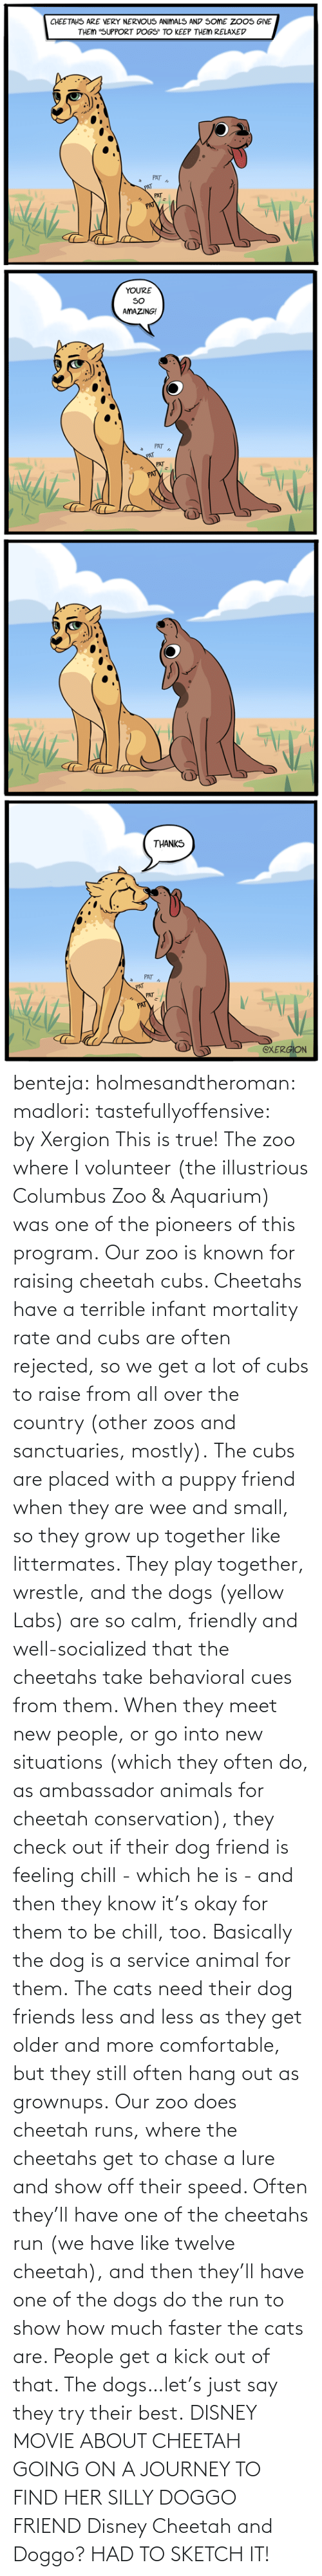 New People: benteja:  holmesandtheroman:  madlori:  tastefullyoffensive: by Xergion This is true! The zoo where I volunteer (the illustrious Columbus Zoo & Aquarium) was one of the pioneers of this program. Our zoo is known for raising cheetah cubs. Cheetahs have a terrible infant mortality rate and cubs are often rejected, so we get a lot of cubs to raise from all over the country (other zoos and sanctuaries, mostly). The cubs are placed with a puppy friend when they are wee and small, so they grow up together like littermates. They play together, wrestle, and the dogs (yellow Labs) are so calm, friendly and well-socialized that the cheetahs take behavioral cues from them. When they meet new people, or go into new situations (which they often do, as ambassador animals for cheetah conservation), they check out if their dog friend is feeling chill - which he is - and then they know it's okay for them to be chill, too. Basically the dog is a service animal for them. The cats need their dog friends less and less as they get older and more comfortable, but they still often hang out as grownups. Our zoo does cheetah runs, where the cheetahs get to chase a lure and show off their speed. Often they'll have one of the cheetahs run (we have like twelve cheetah), and then they'll have one of the dogs do the run to show how much faster the cats are. People get a kick out of that. The dogs…let's just say they try their best.   DISNEY MOVIE ABOUT CHEETAH GOING ON A JOURNEY TO FIND HER SILLY DOGGO FRIEND  Disney Cheetah and Doggo? HAD TO SKETCH IT!